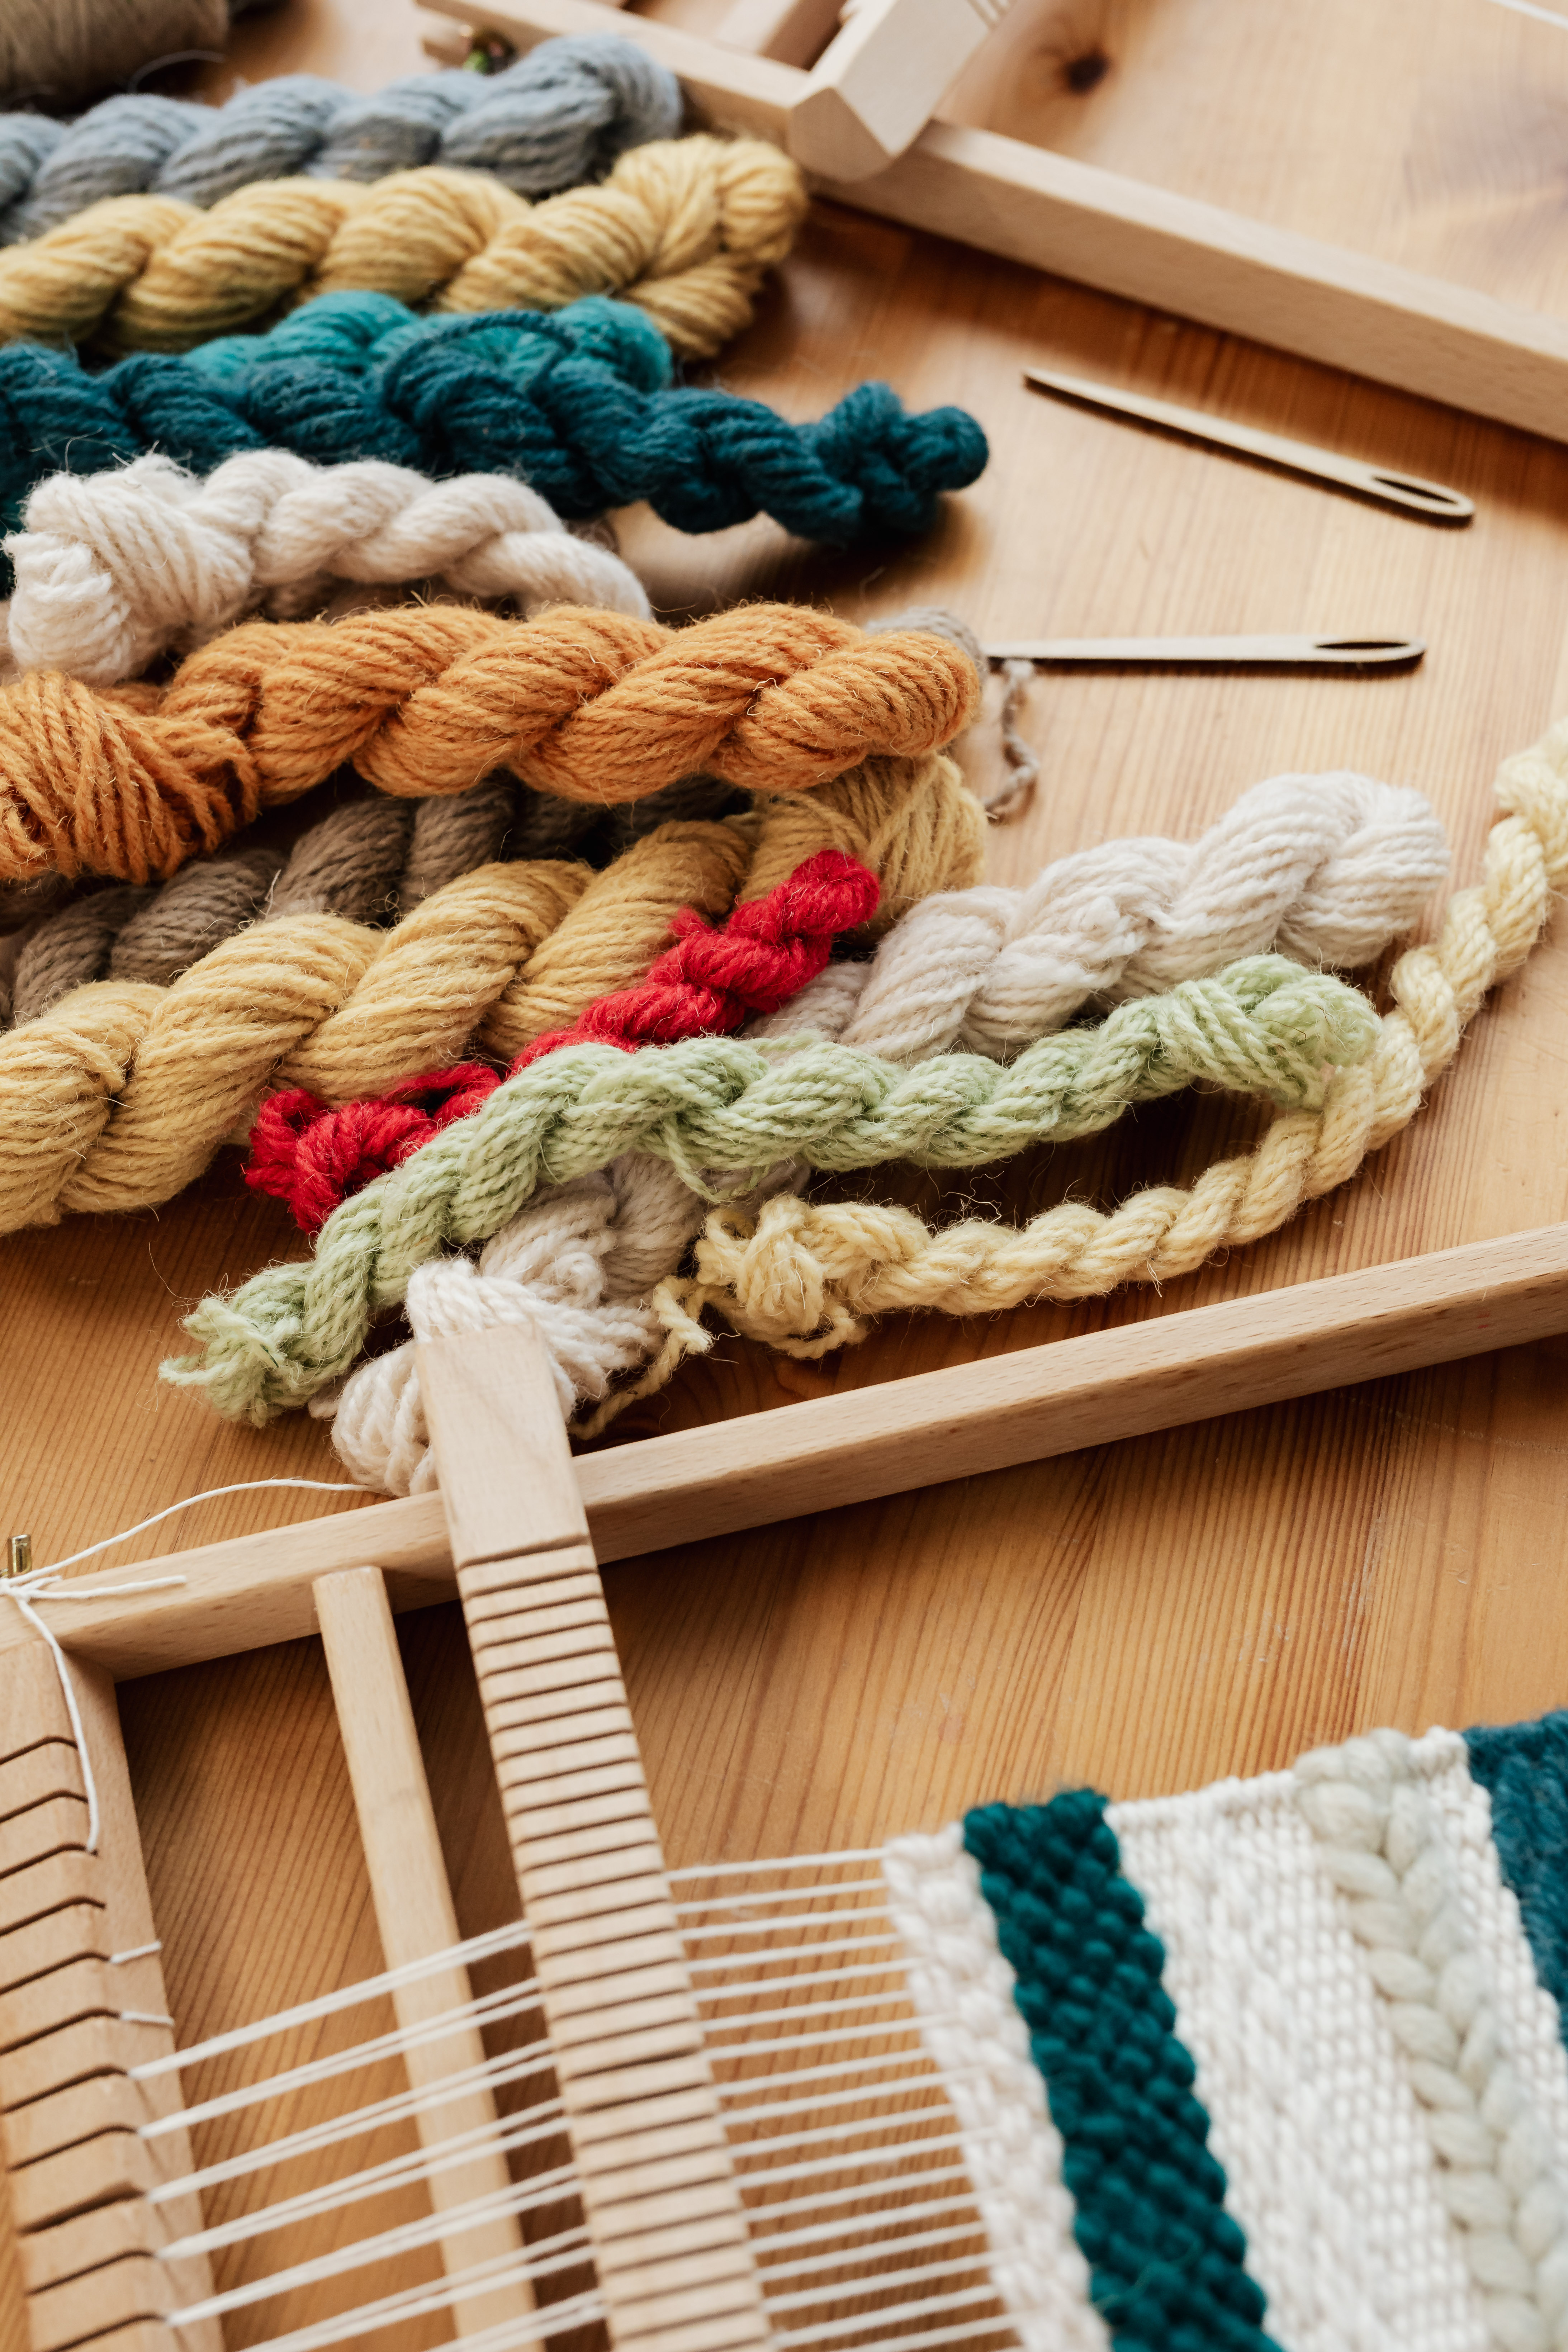 unfinished handmade carpet on hand wooden loom with yarn and wooden needles